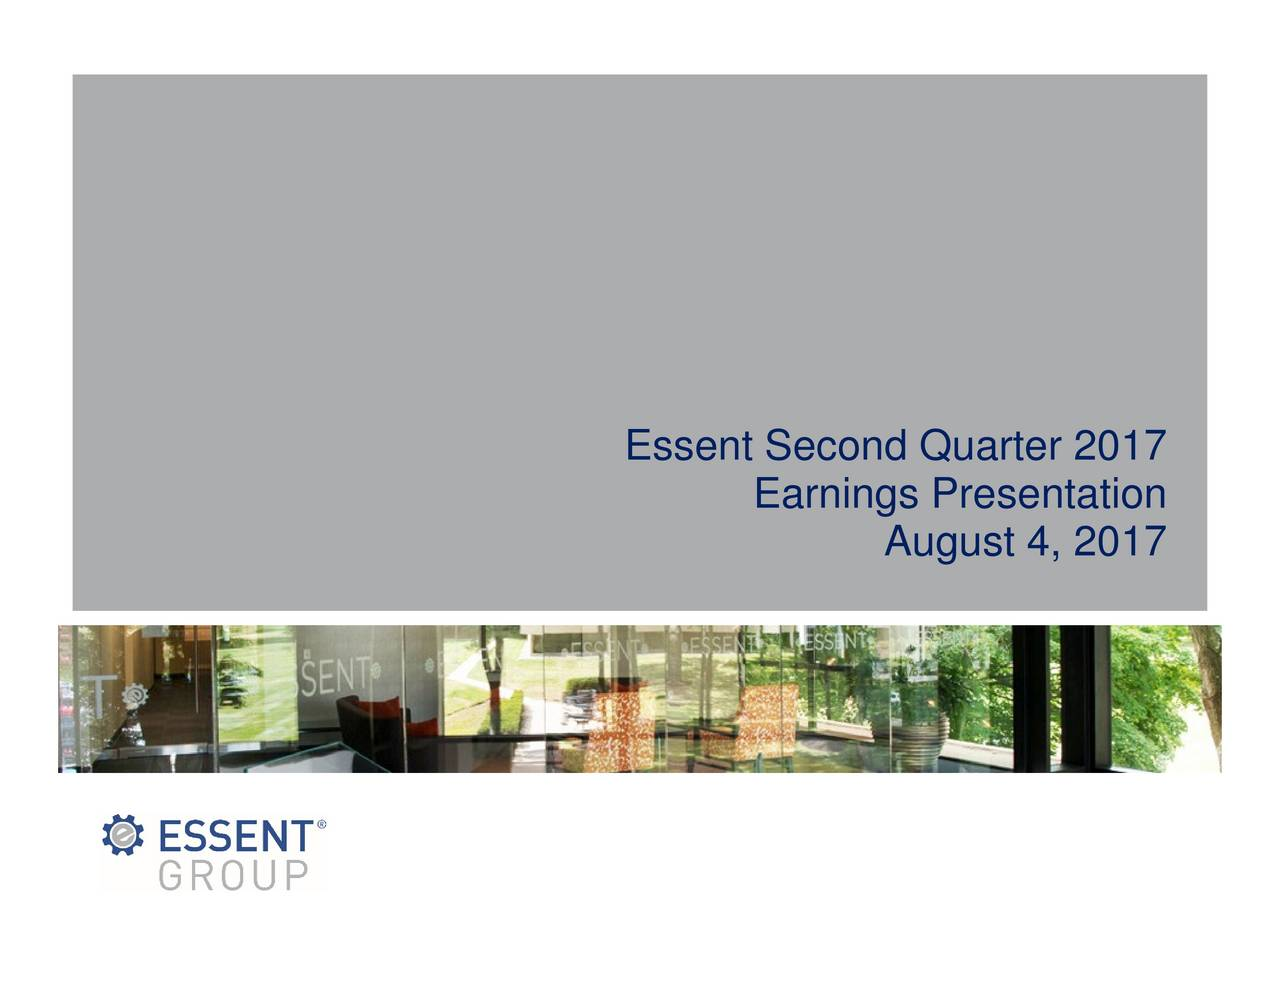 Earnings Presentation Essent Second Quarter 2017